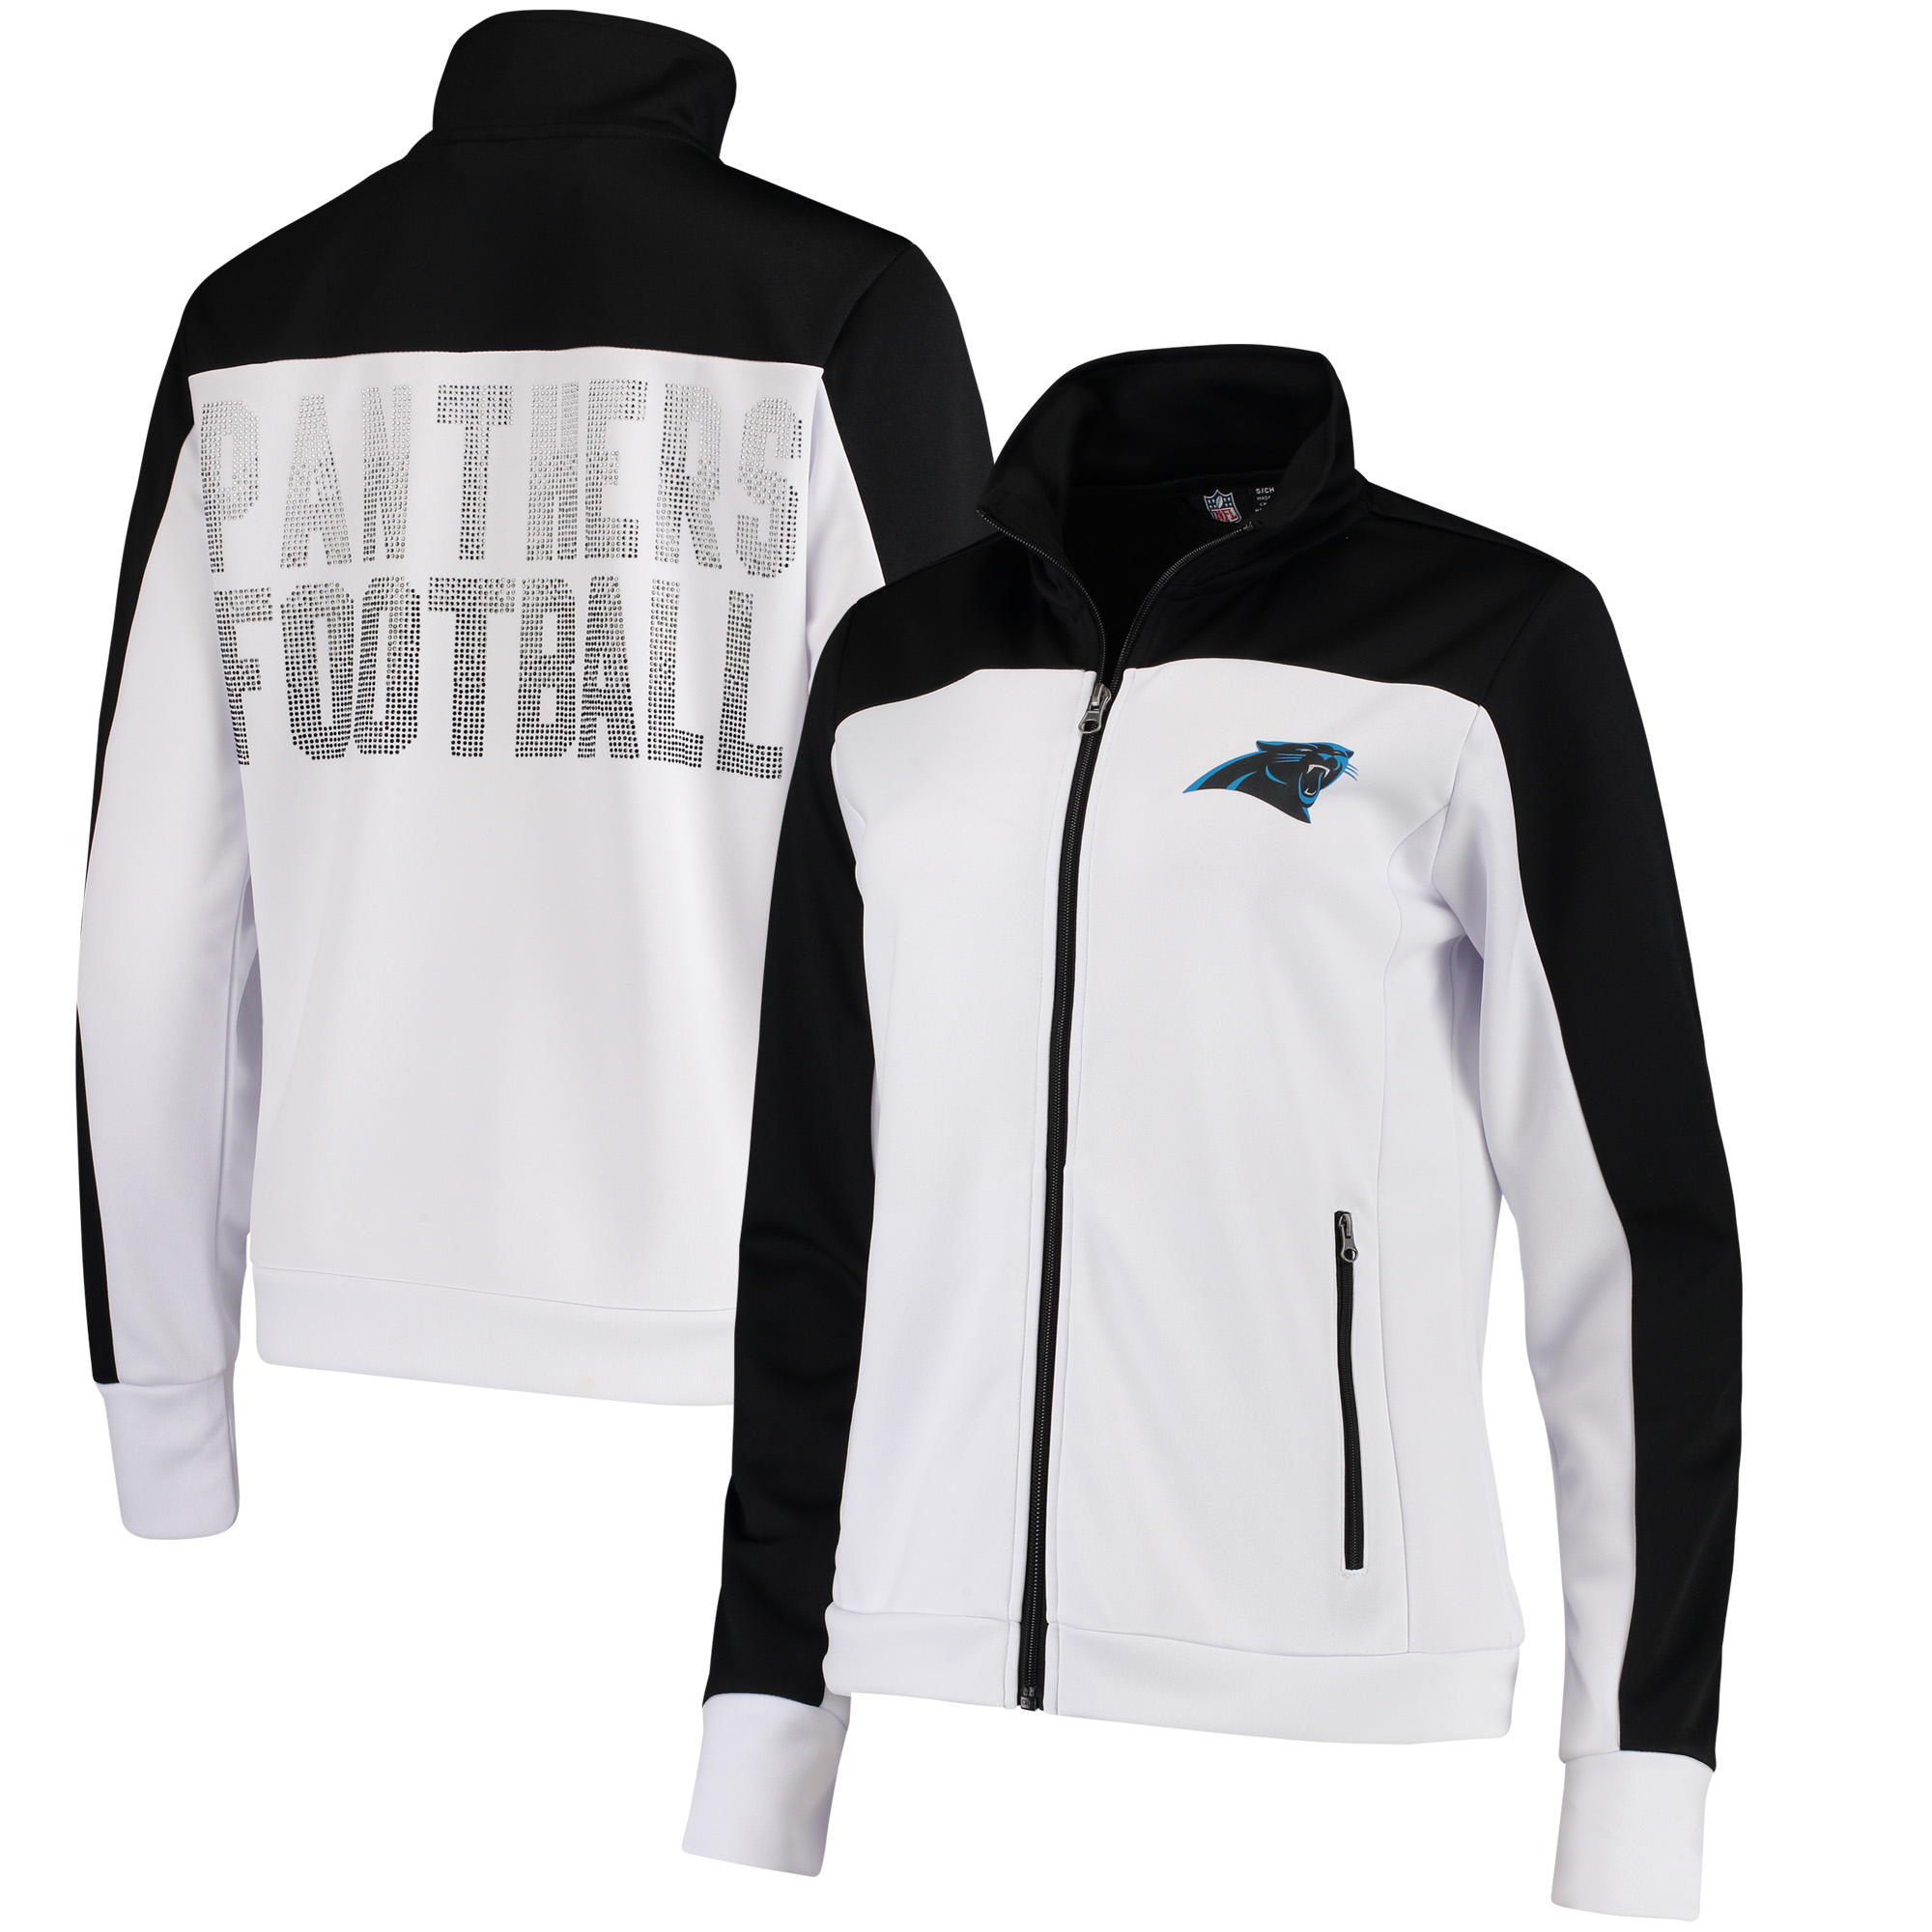 Carolina Panthers G-III 4Her by Carl Banks Women's Playmaker Full-Zip Track Jacket - White/Black